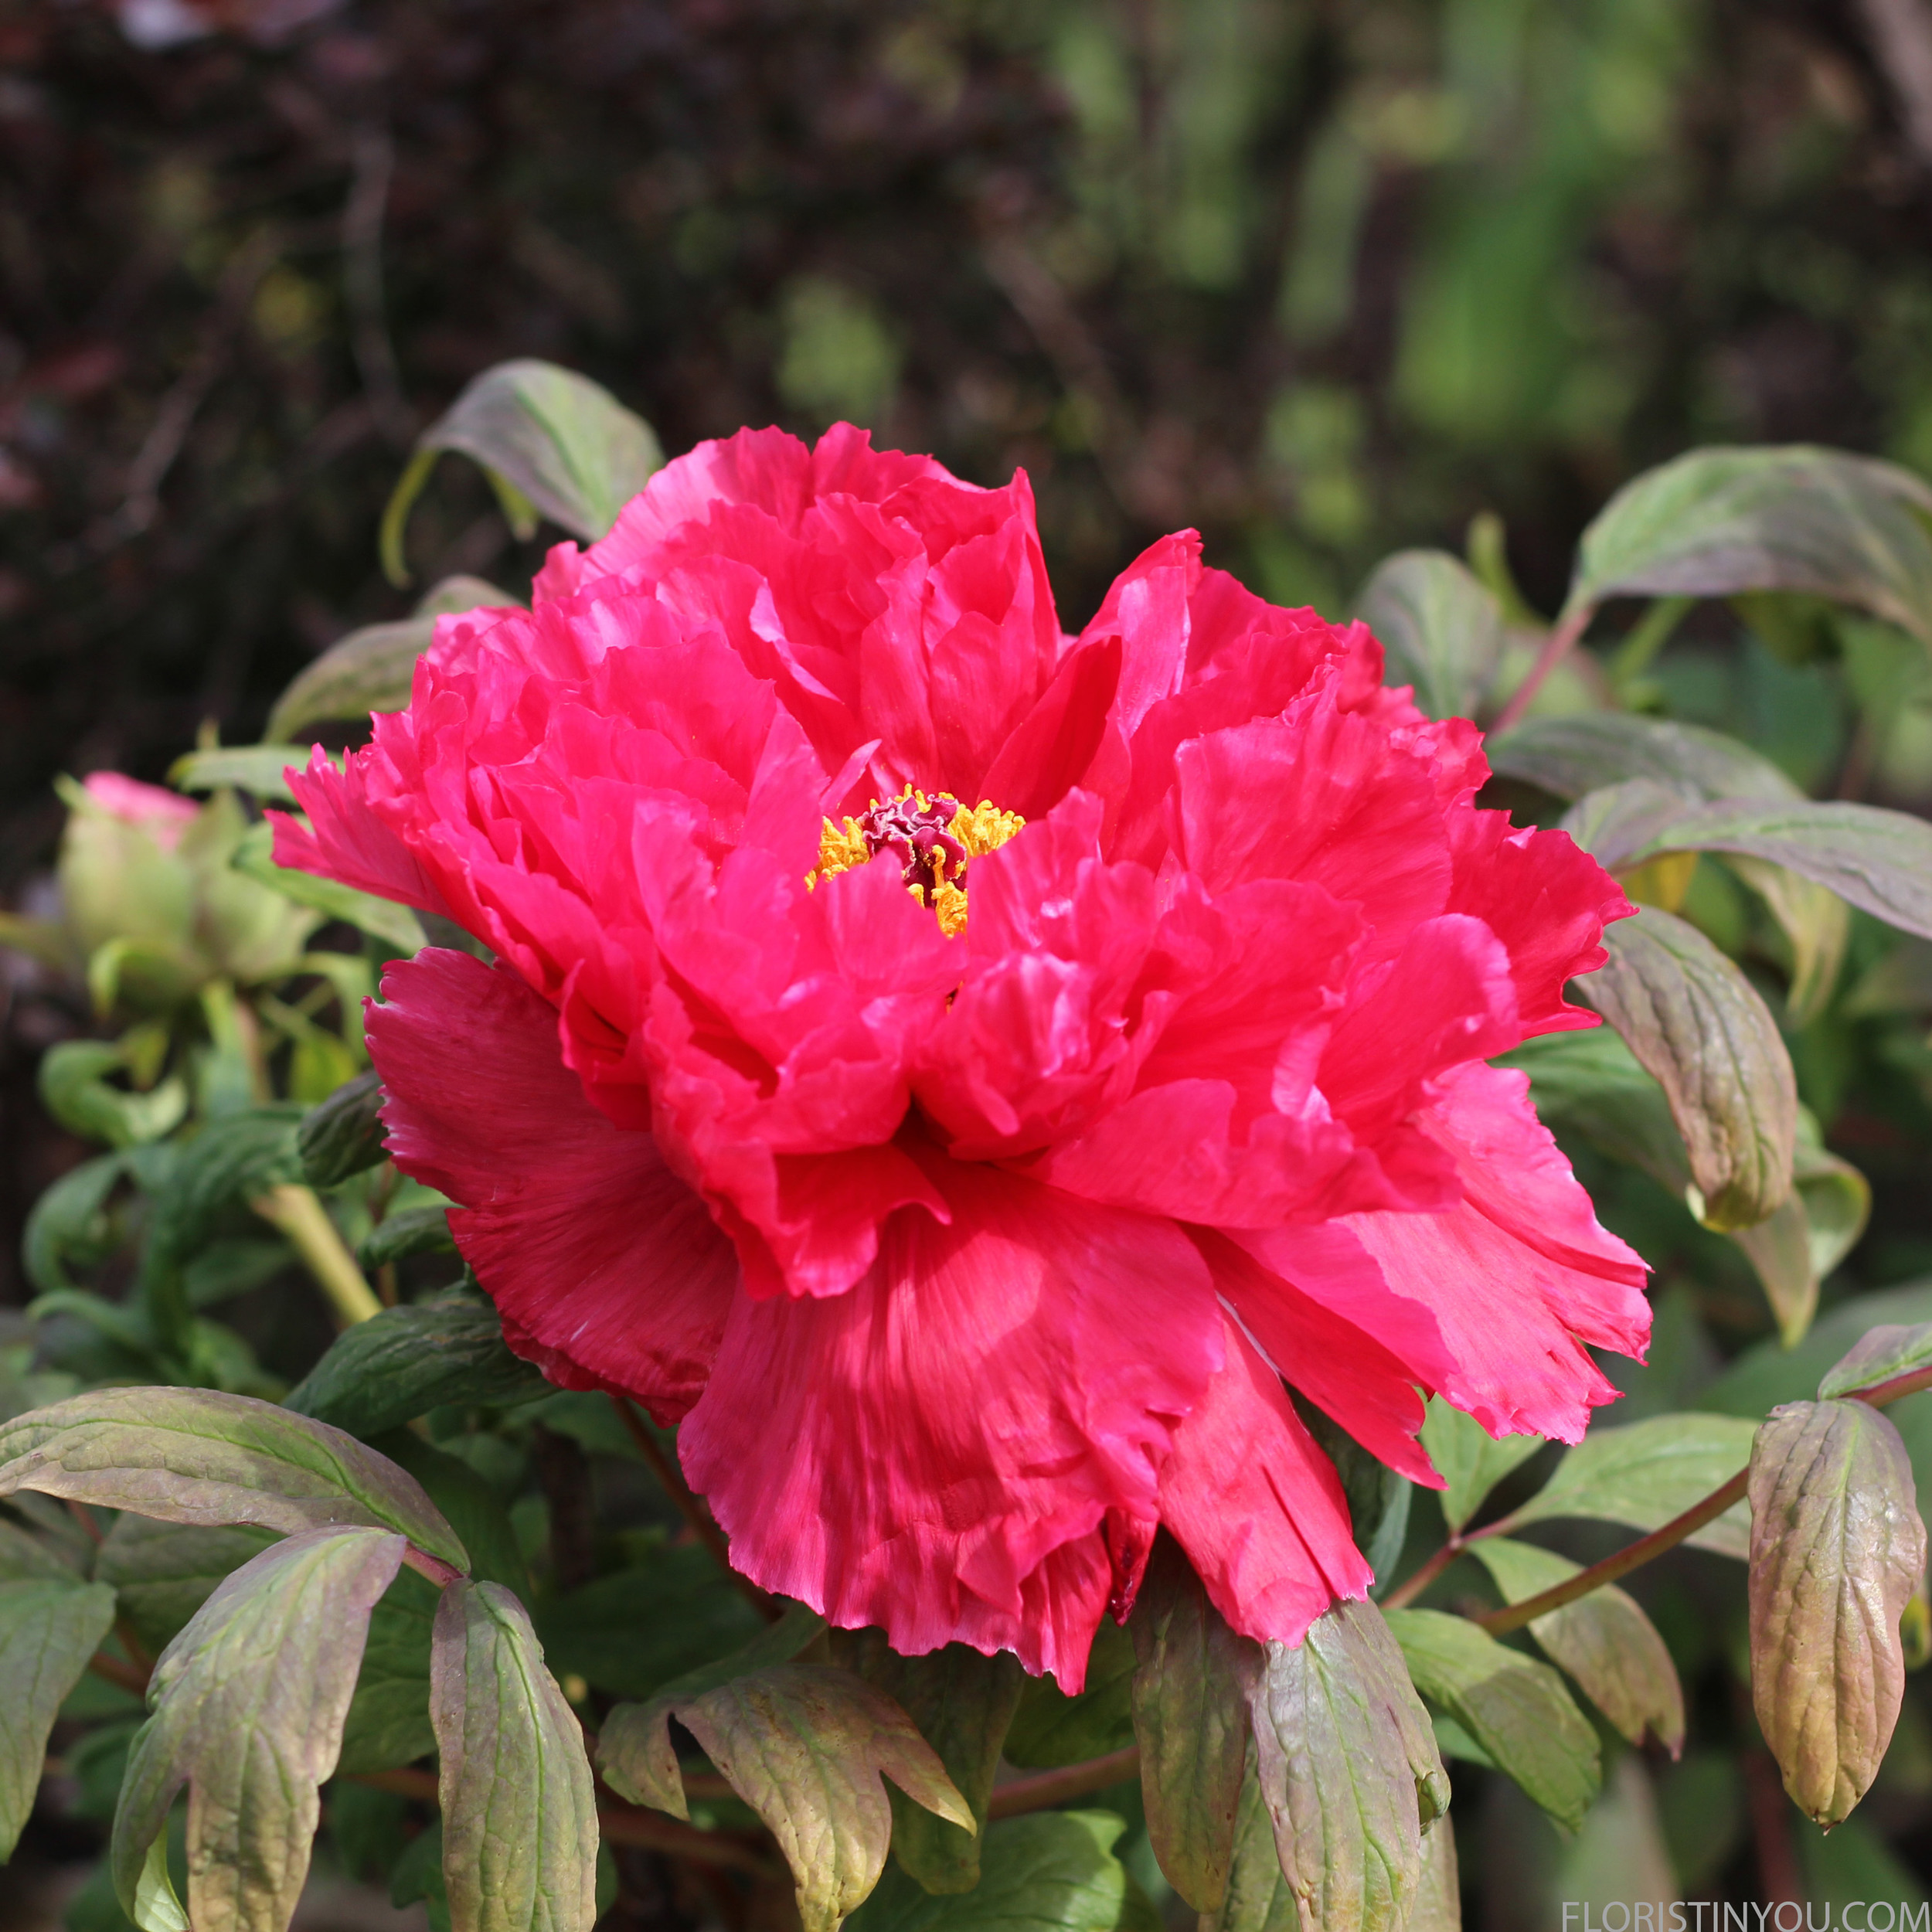 There were fuchsia tree peonies too the size of dinner plates.